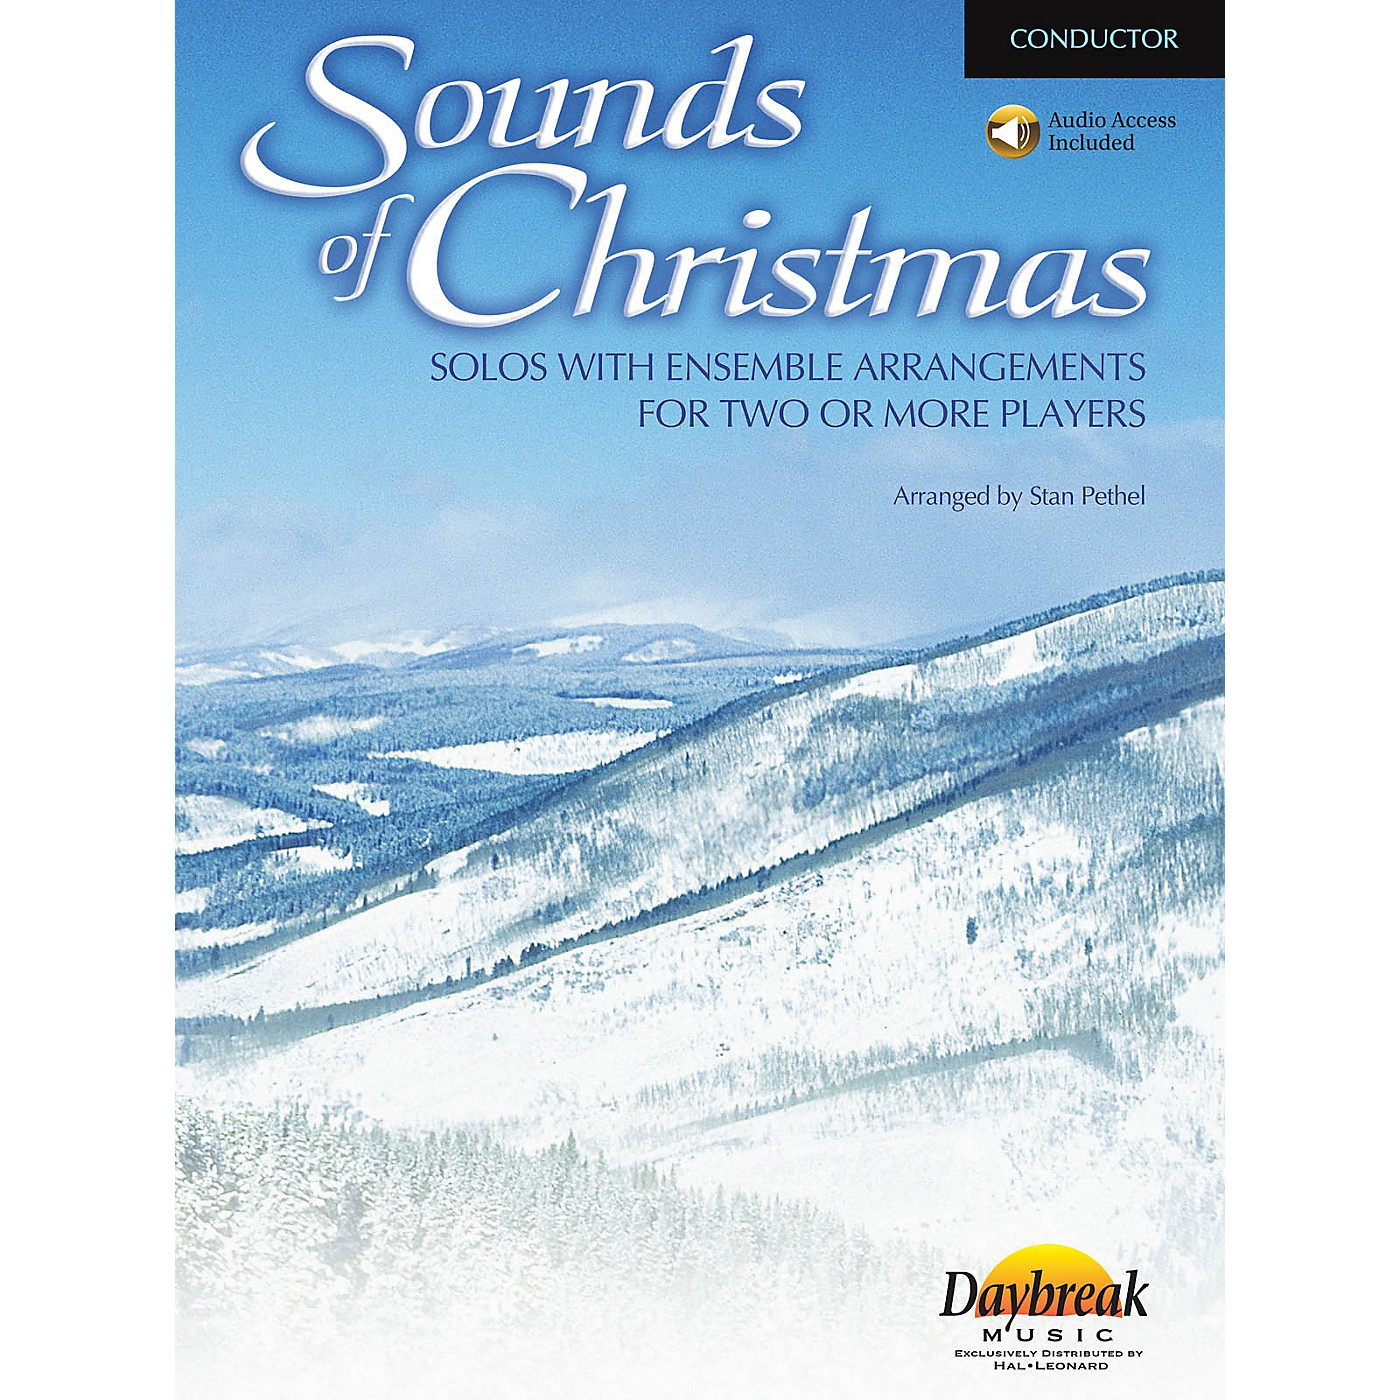 Daybreak Music Sounds of Christmas (Solos with Ensemble Arrangements for 2 or More Players) CONDUCTOR thumbnail